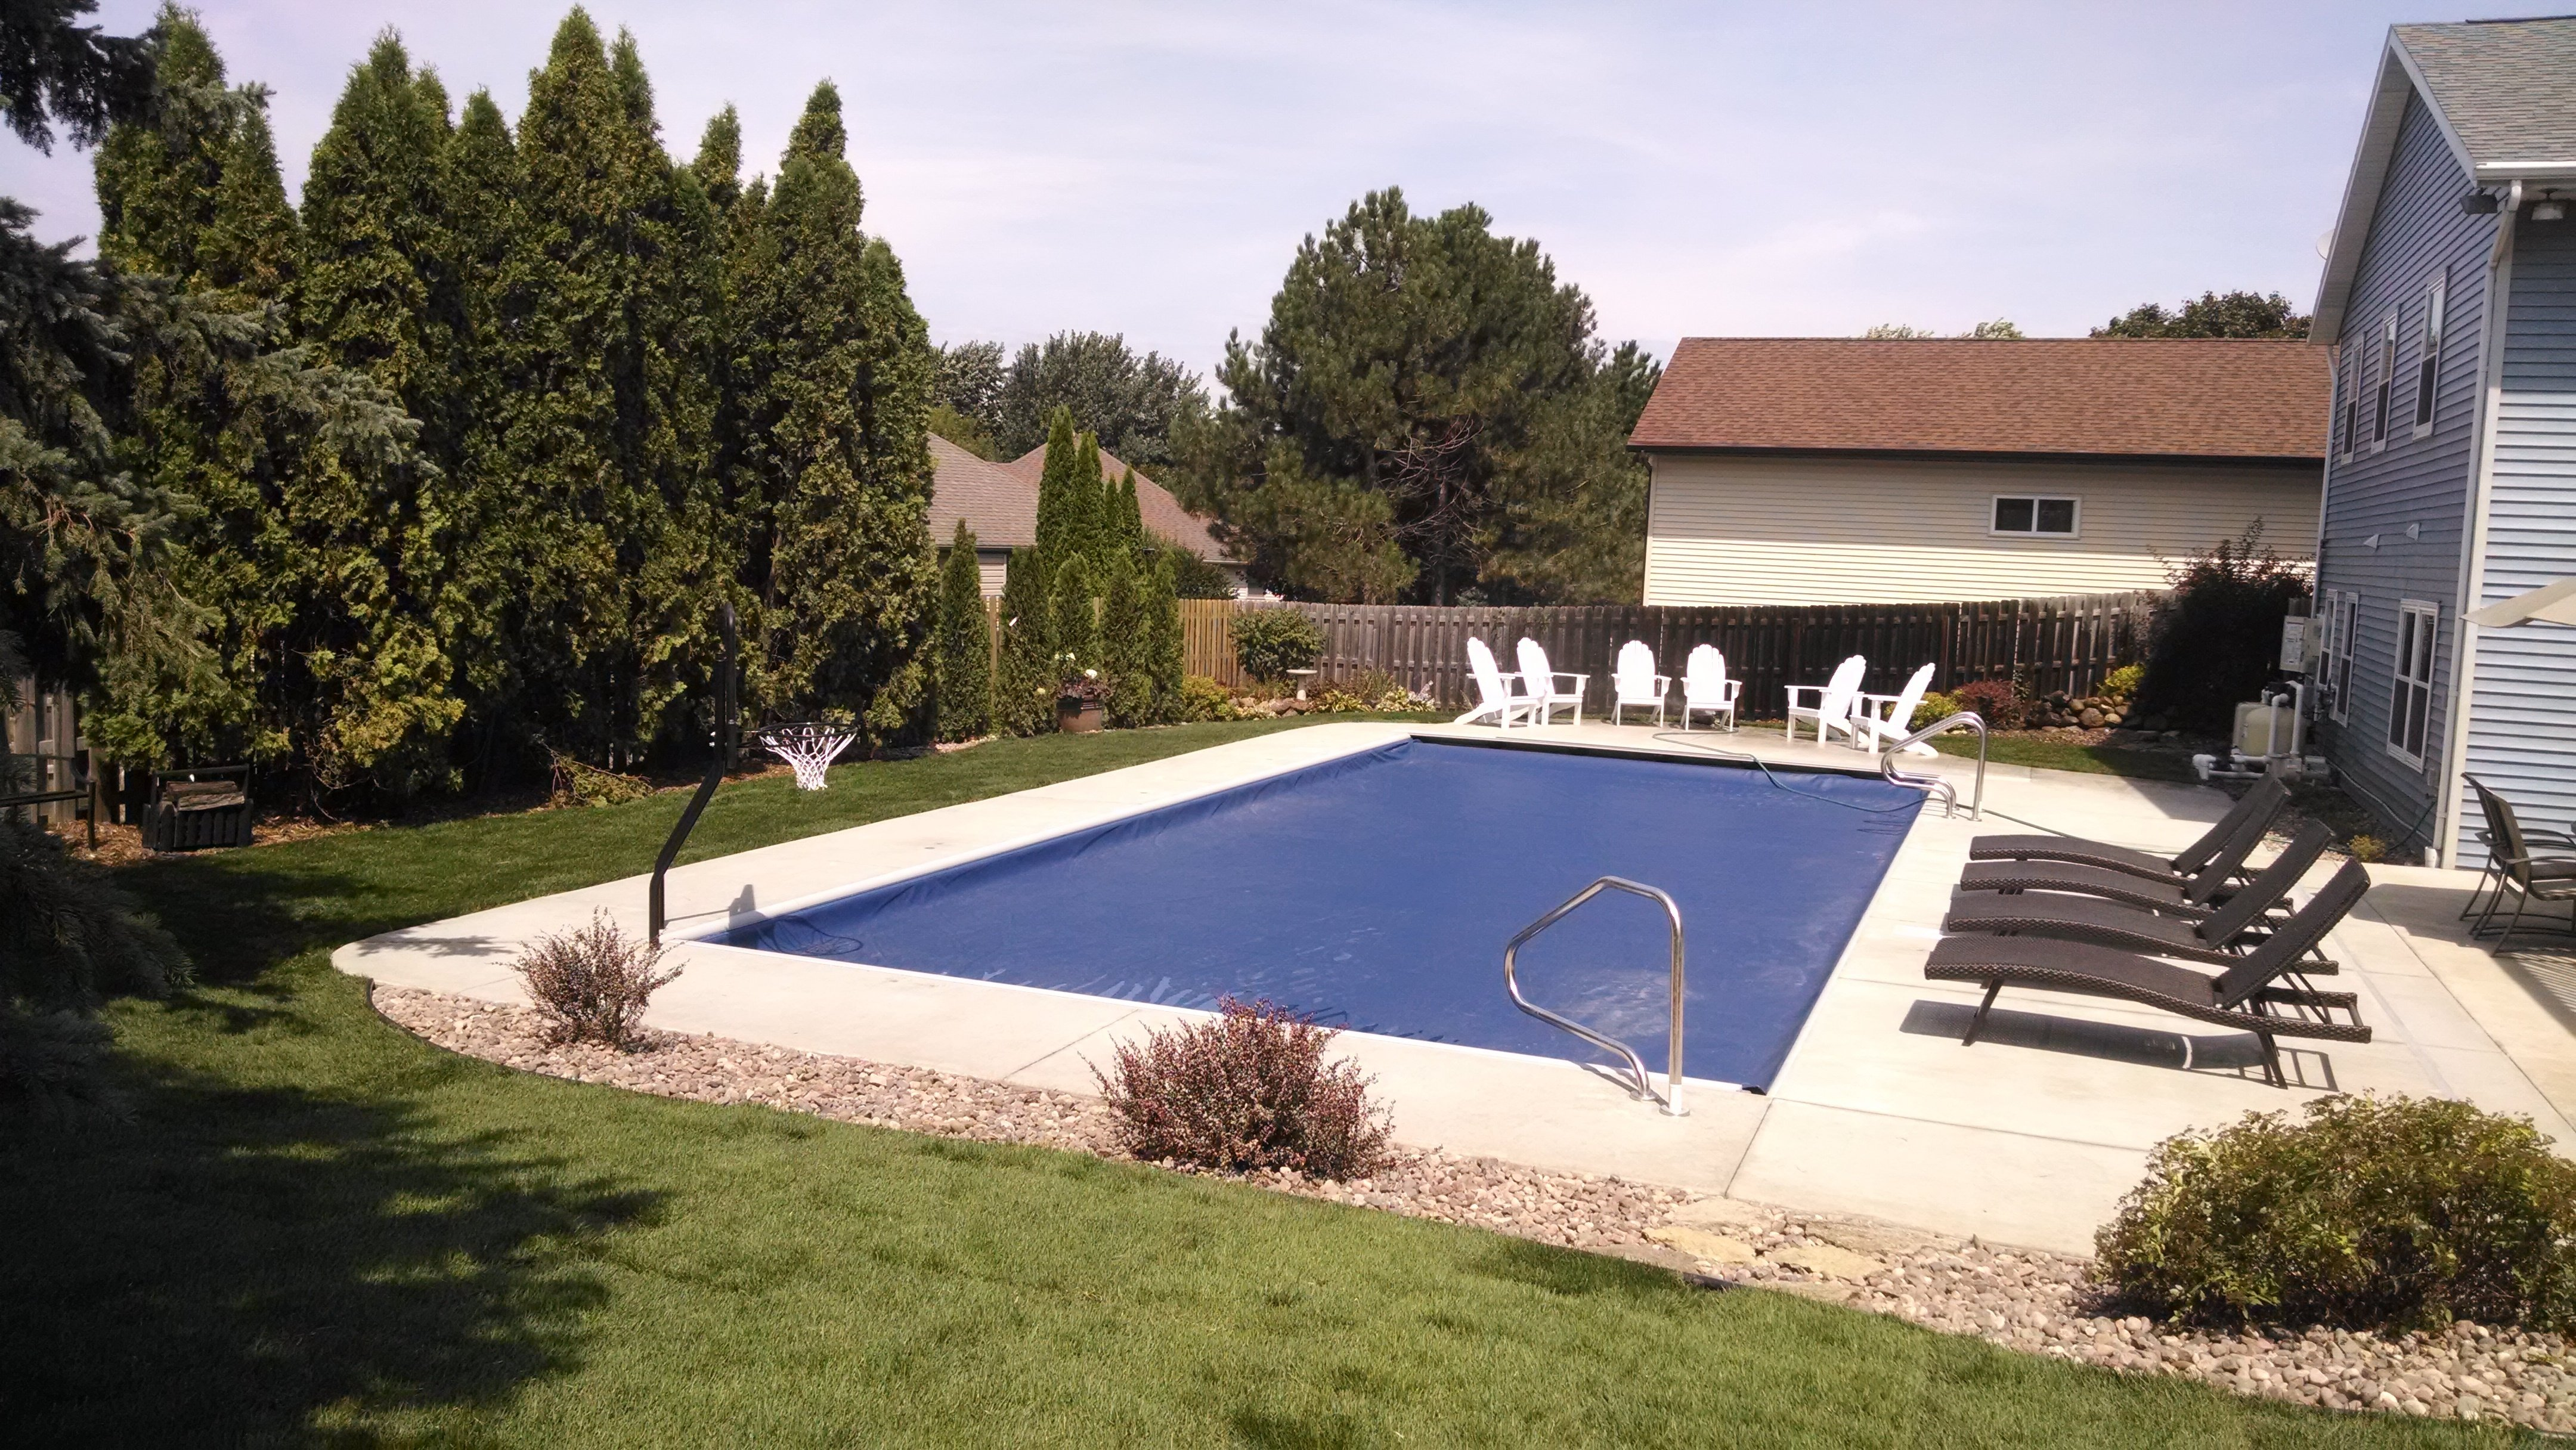 Fort Atkinson Outdoor pool